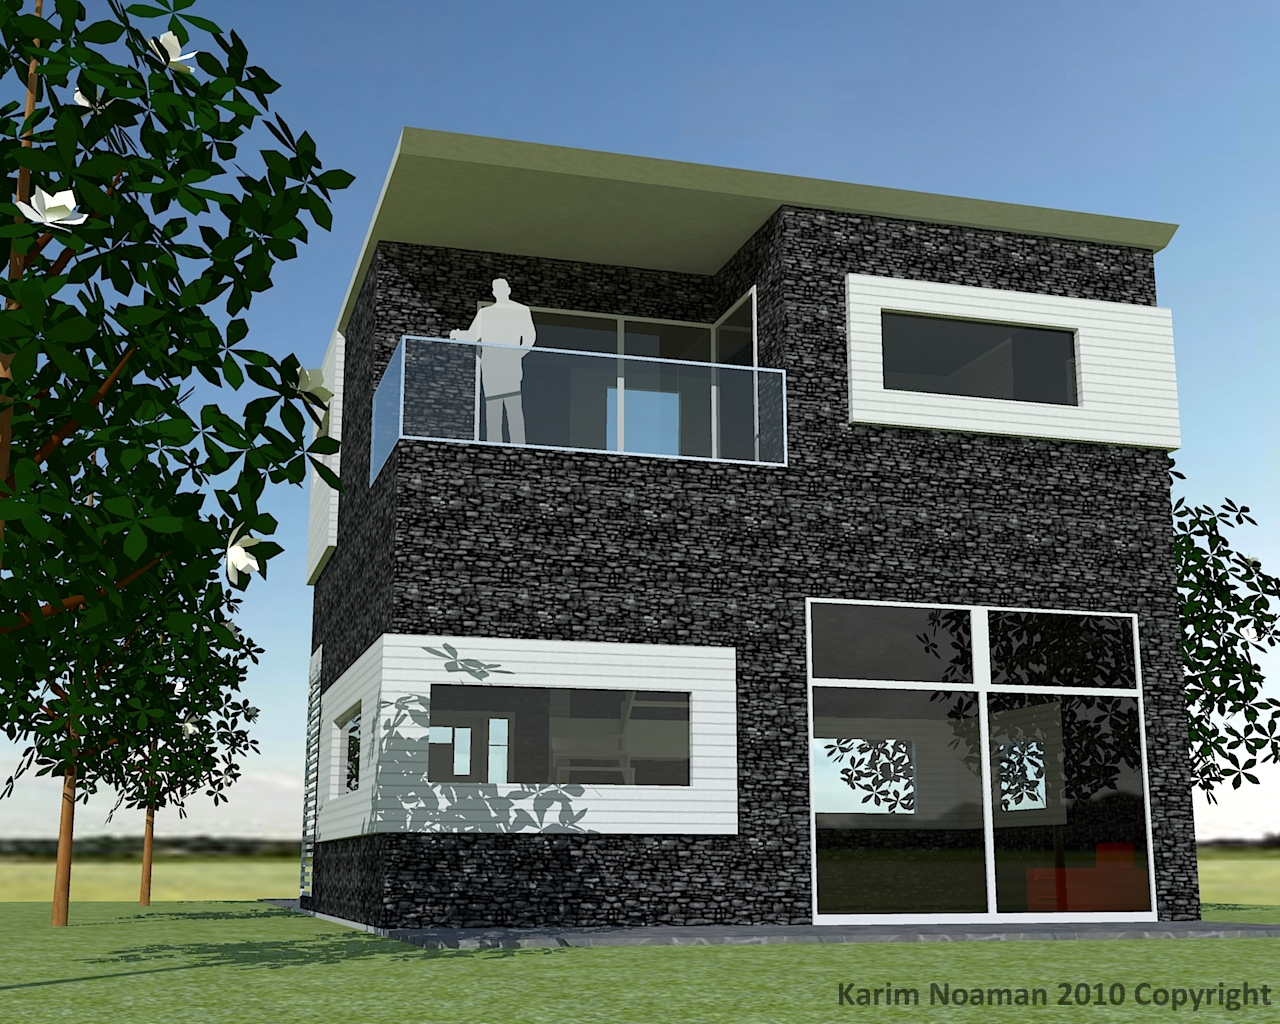 Simple modern house design by knoaman on deviantart for Home outer colour design